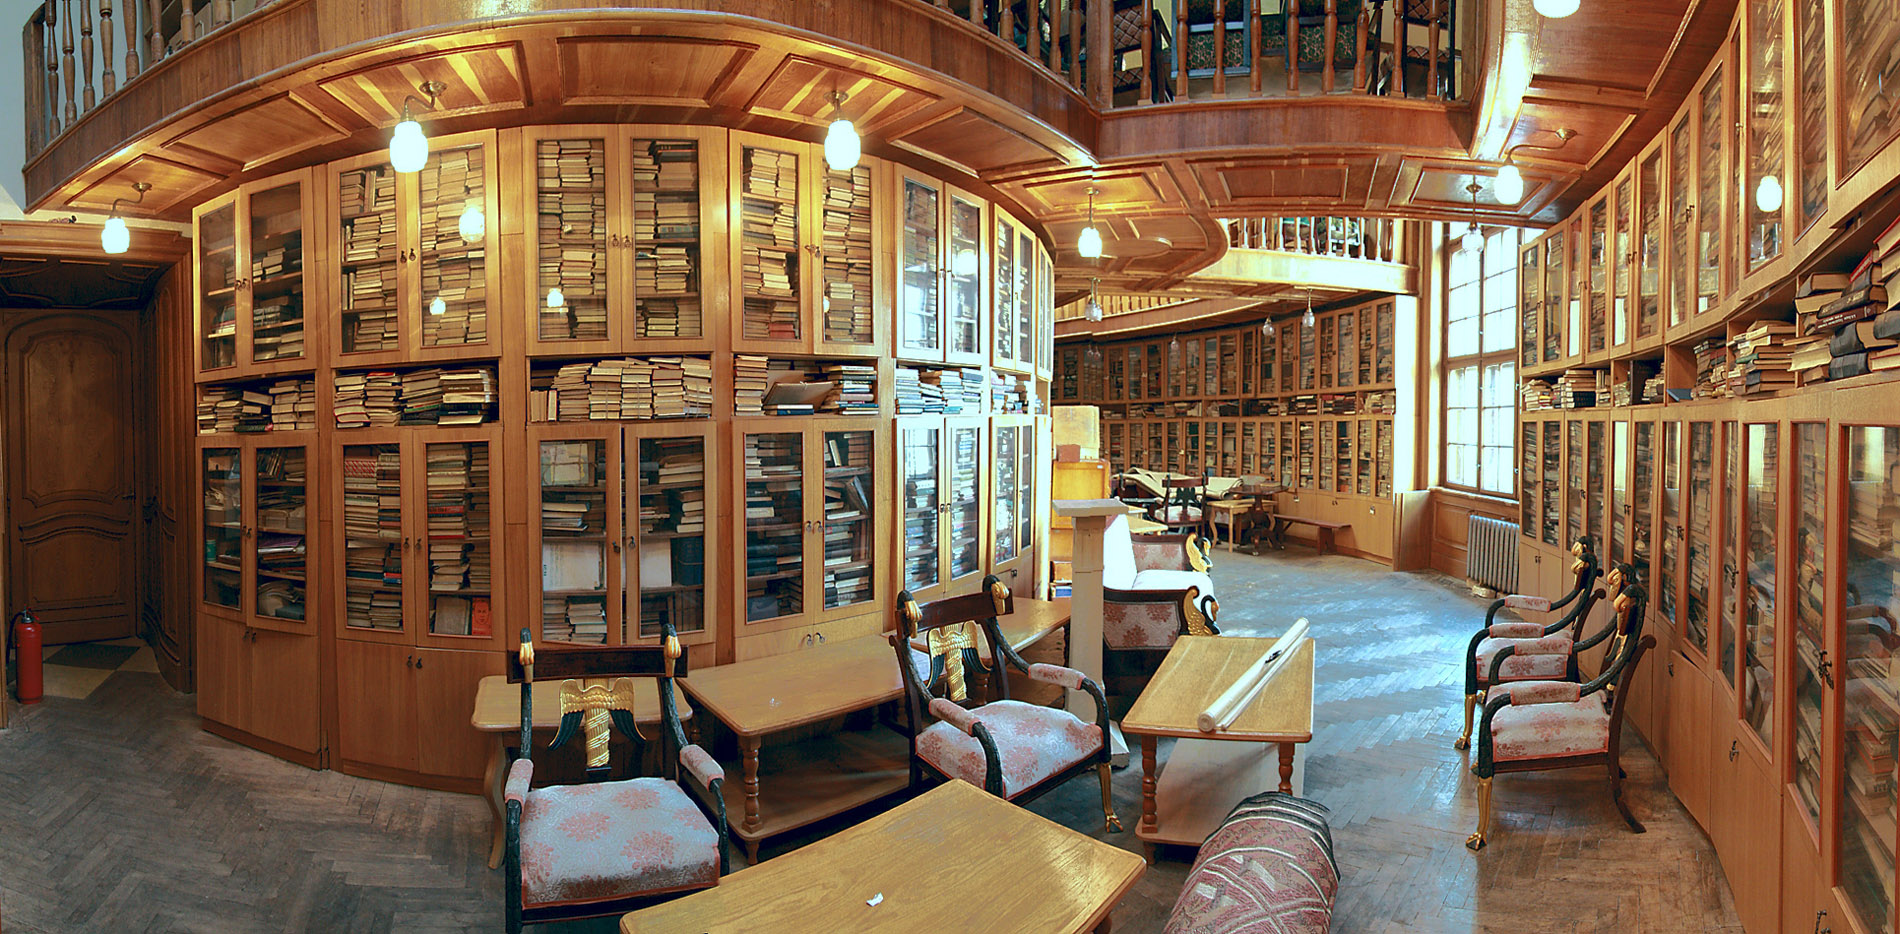 & Library in House of Scientists Lviv Ukraine